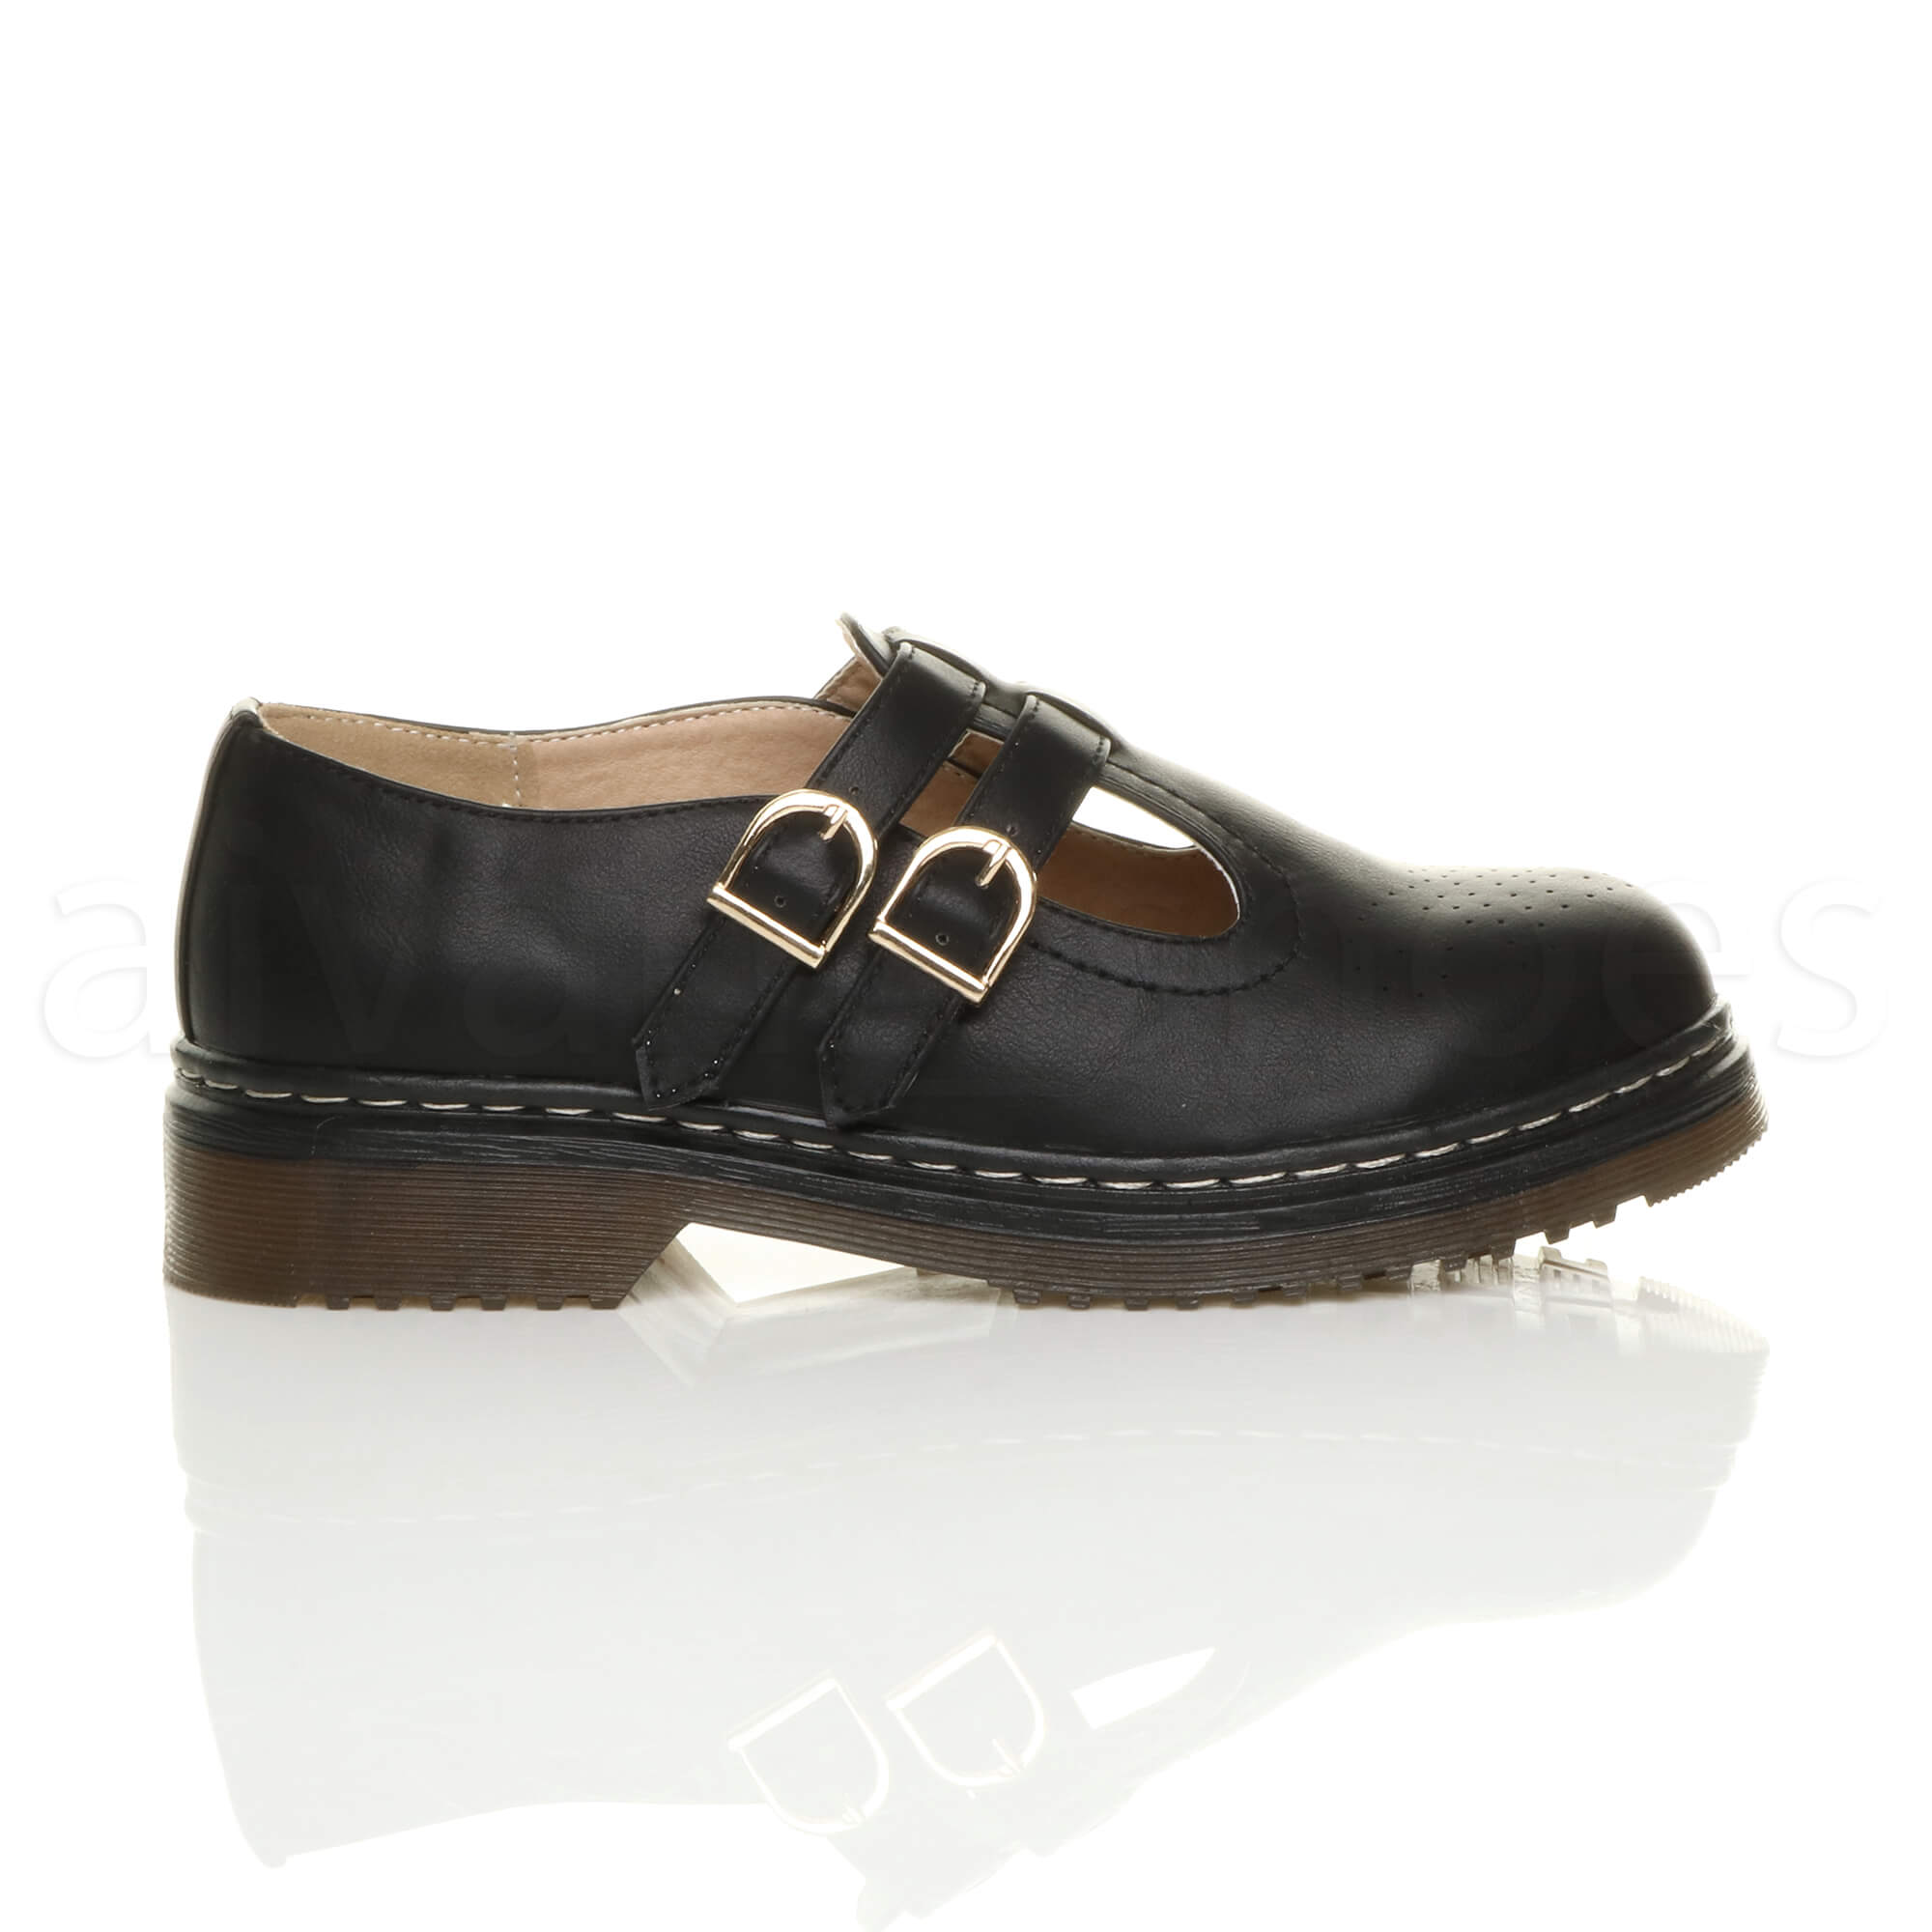 WOMENS-LADIES-LOW-HEEL-MARY-JANE-DOUBLE-STRAP-BUCKLE-CHUNKY-BROGUES-SHOES-SIZE